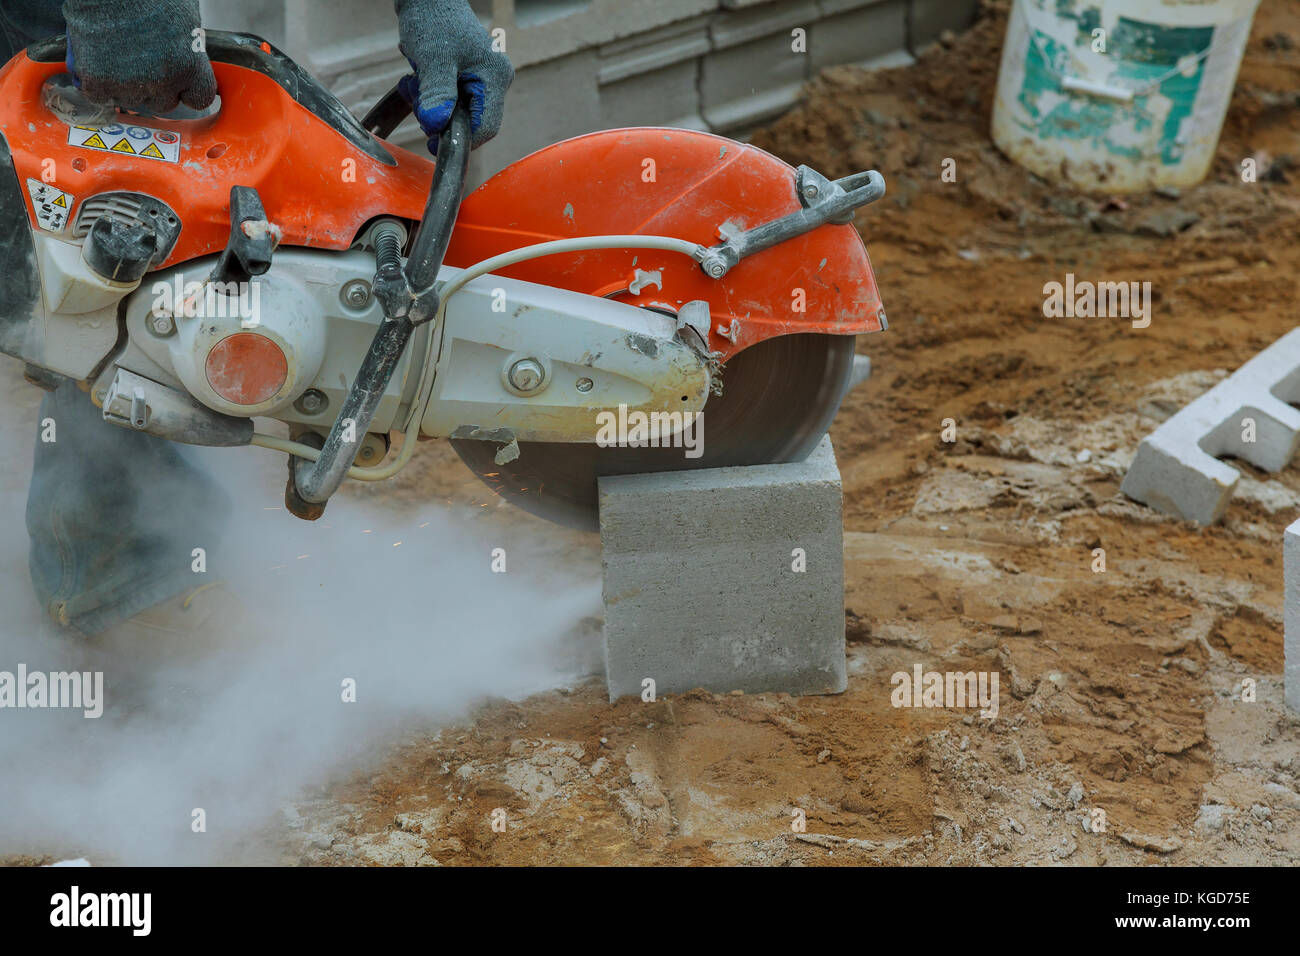 Electric Tile Cutter Stock Photos Amp Electric Tile Cutter